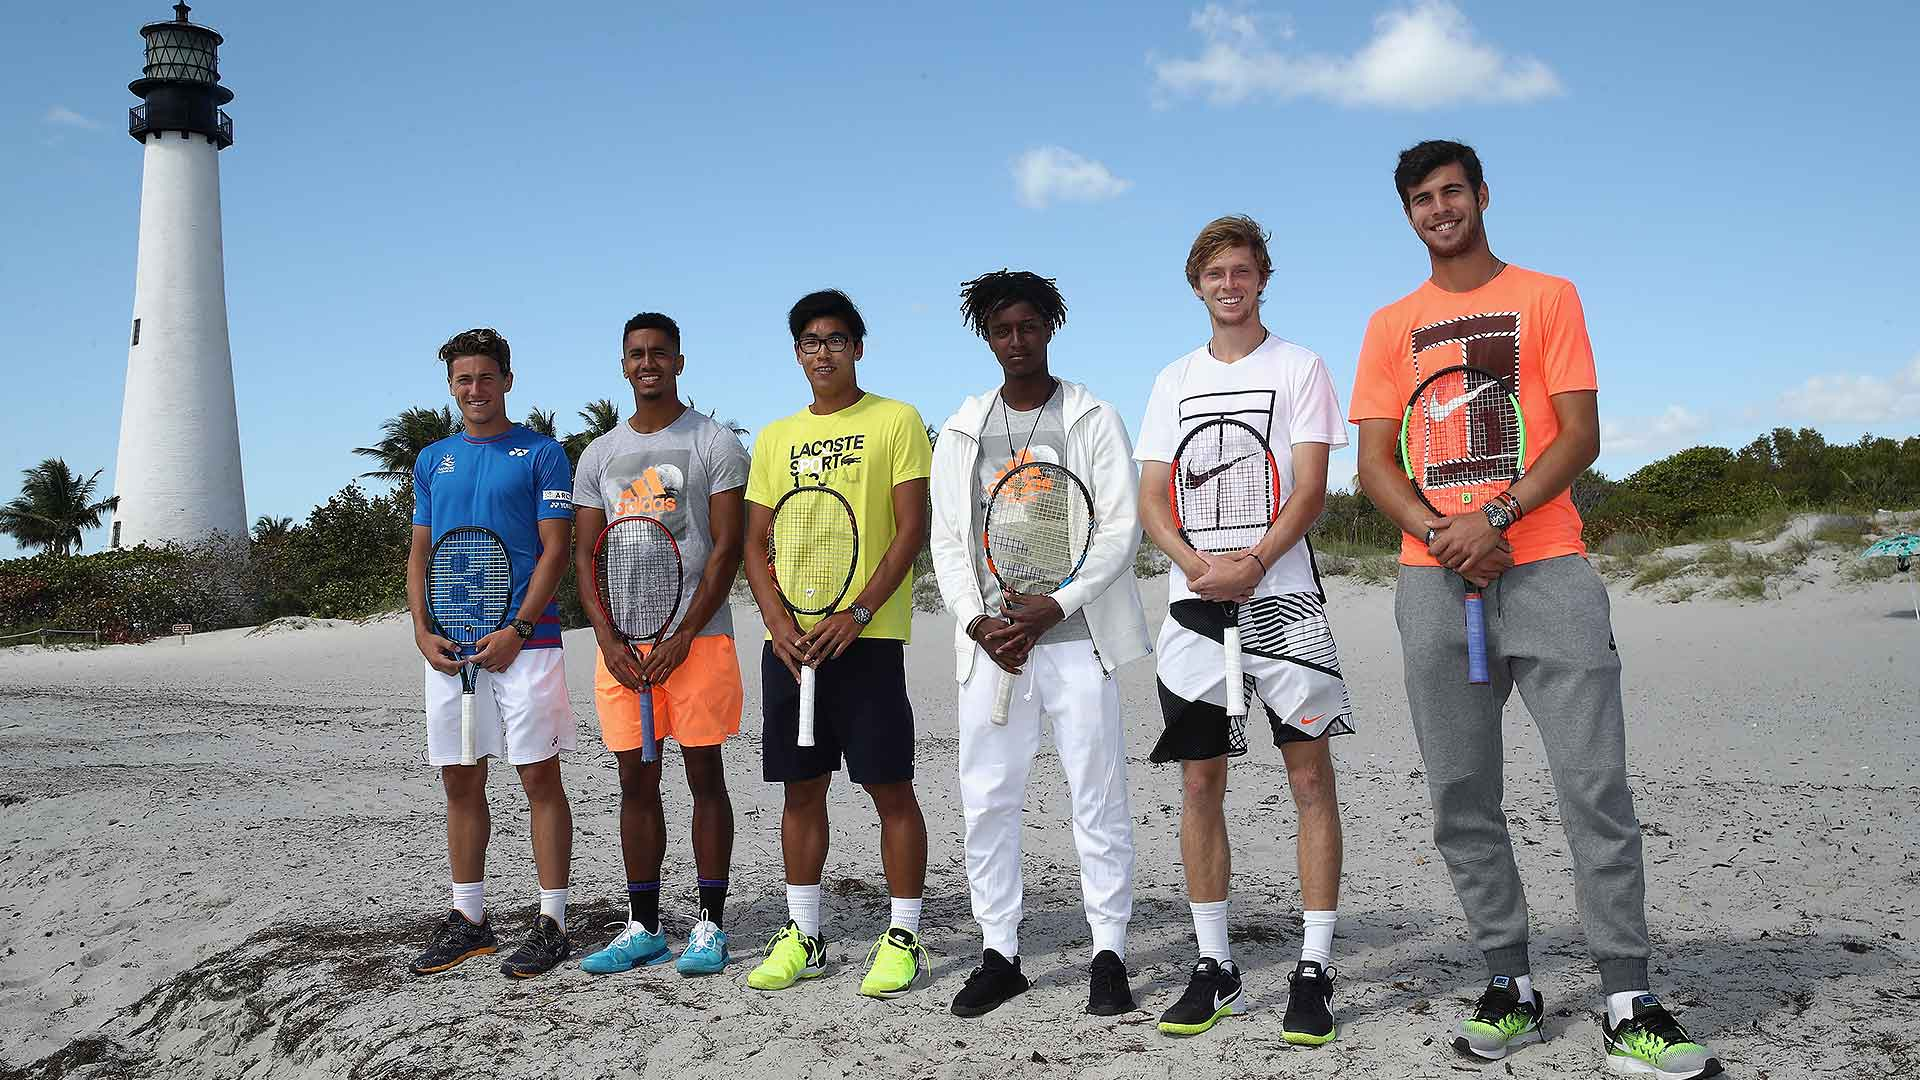 #NextGenATP players Casper Ruud, Michael Mmoh, Hyeon Chung, Mikael Ymer, Andrey Rublev and Karen Khachanov pose in front of the Lighthouse at Cape Florida ahead of the Miami Open presented by Itau.